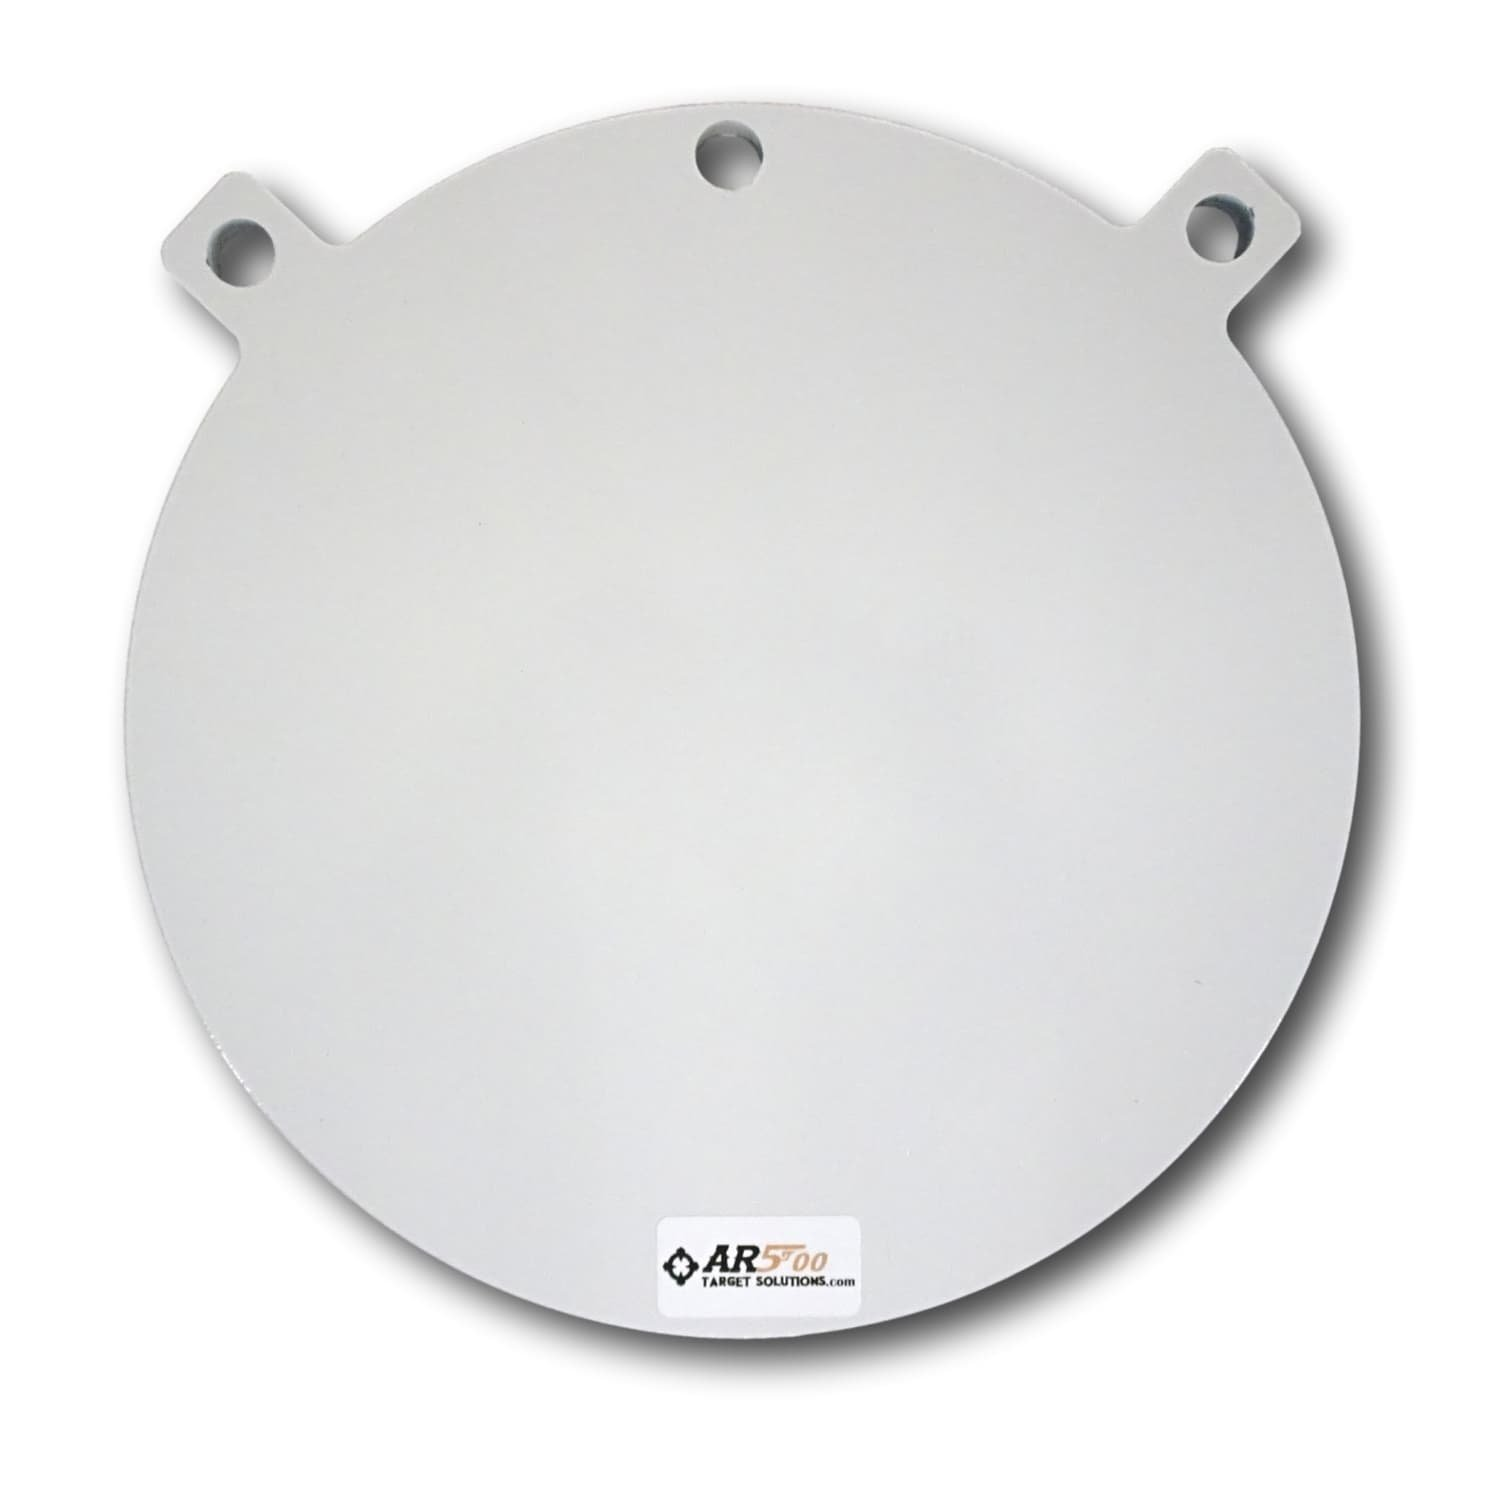 Ar500 Target Solutions- Quality 3/8, 1/2 Thick AR500 Steel Targets- Laser Cut Powder Coated Made in USA (10'', 1/2)